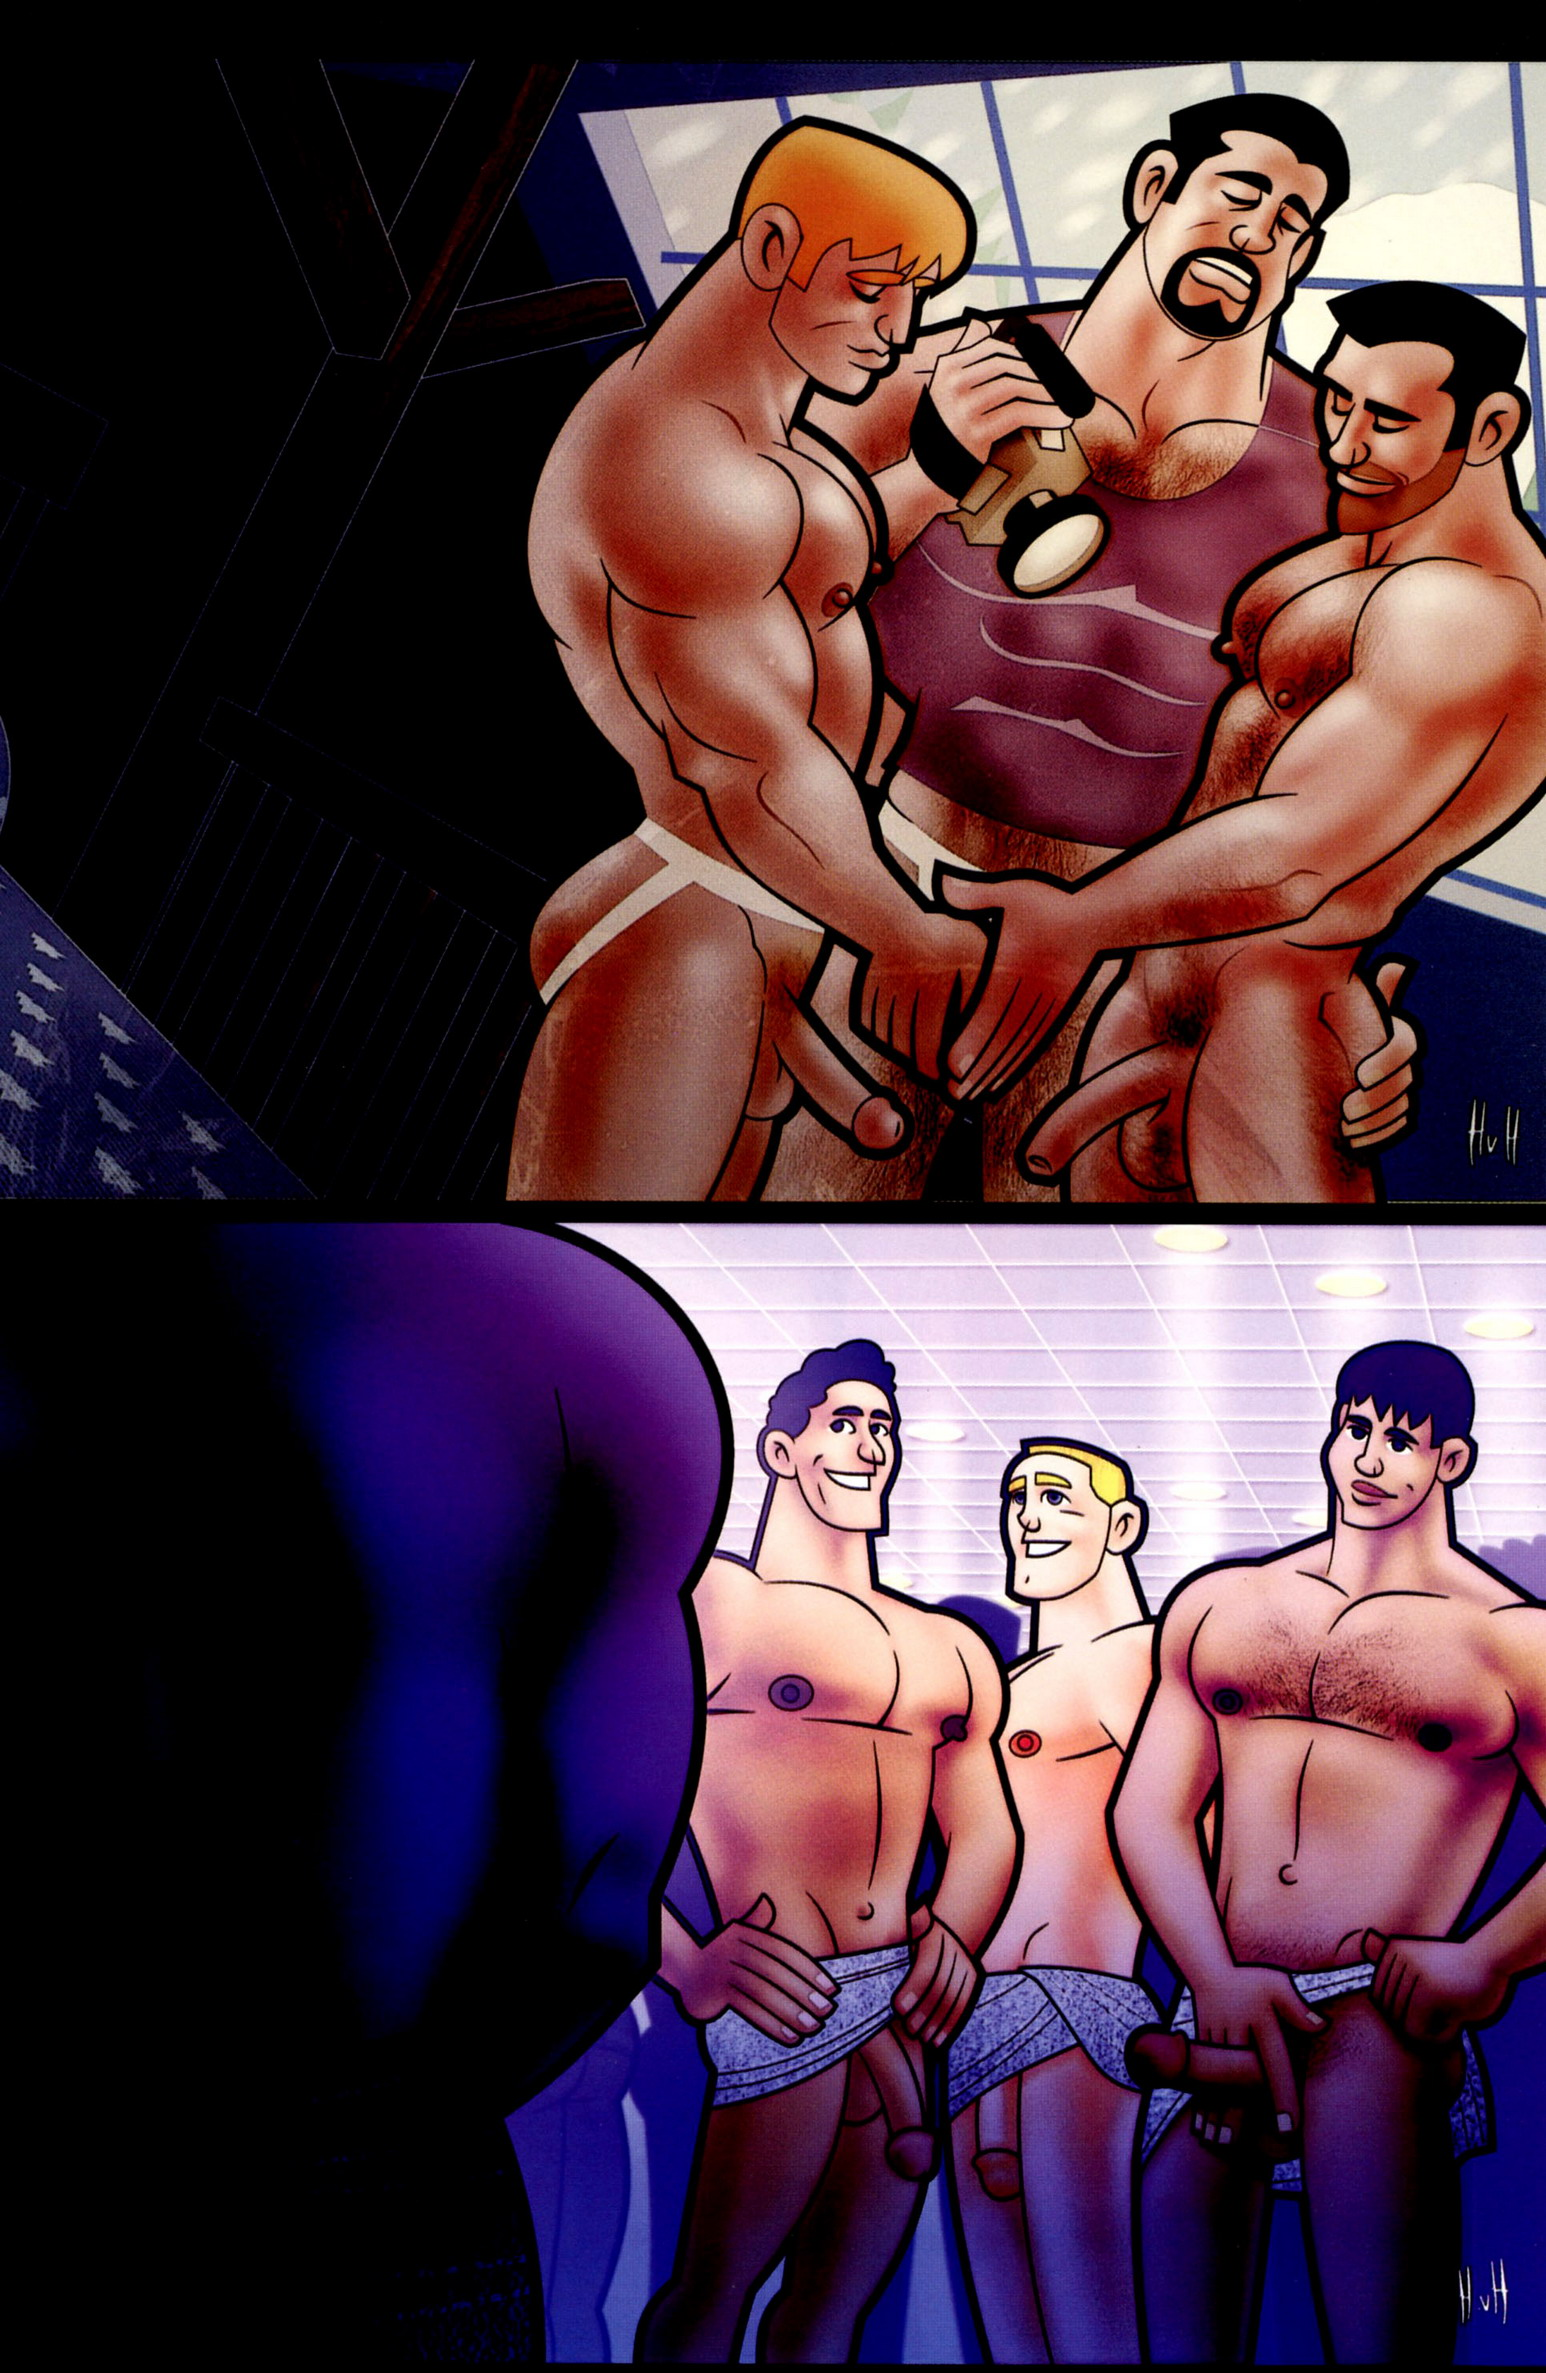 New superhero fabman stars in these great gay comics